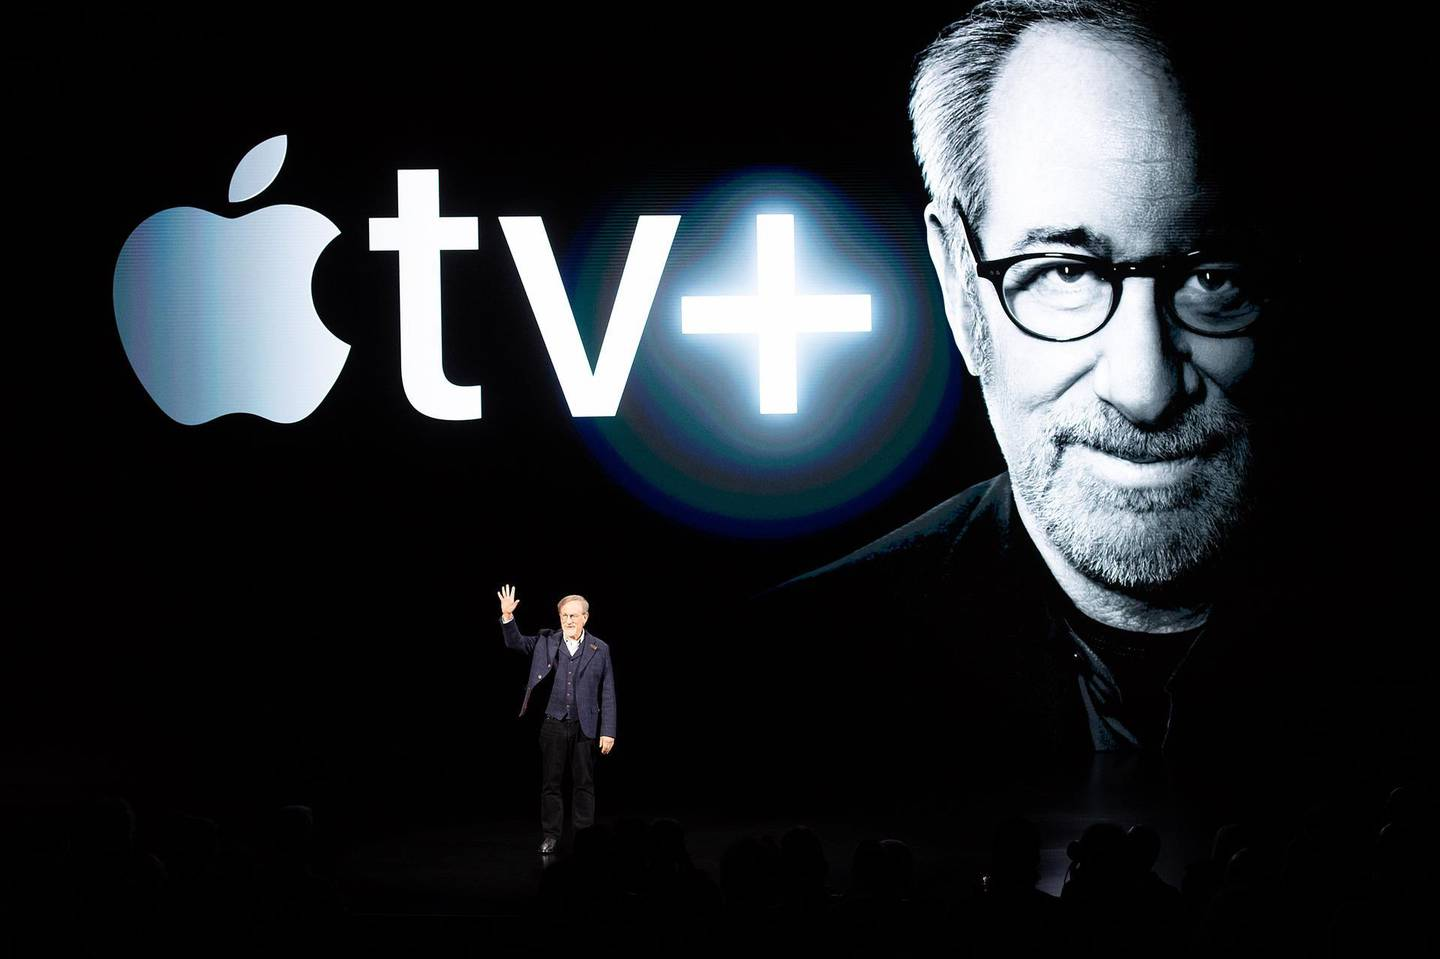 """(FILES) In this file photo taken on March 25, 2019 Director Steven Spielberg speaks during an event launching Apple tv+ at Apple headquarters in Cupertino, California. It may already have Oscars under its belt, but Netflix's acceptance by the Academy of Motion Picture Arts and Sciences hangs in the balance. The prestigious body is set to reexamine whether the streaming giant will remain eligible for such awards, despite a warning from the US Justice Department that could violate antitrust laws. Film director Steven Spielberg has suggested that Netflix films should not be eligible for Oscars, but instead for Emmy Awards handed to the stars and creators of television shows. """"Once you commit to a television format, you're a TV movie,"""" said Spielberg, who is set to work with new streaming platform Apple TV+.   / AFP / NOAH BERGER"""